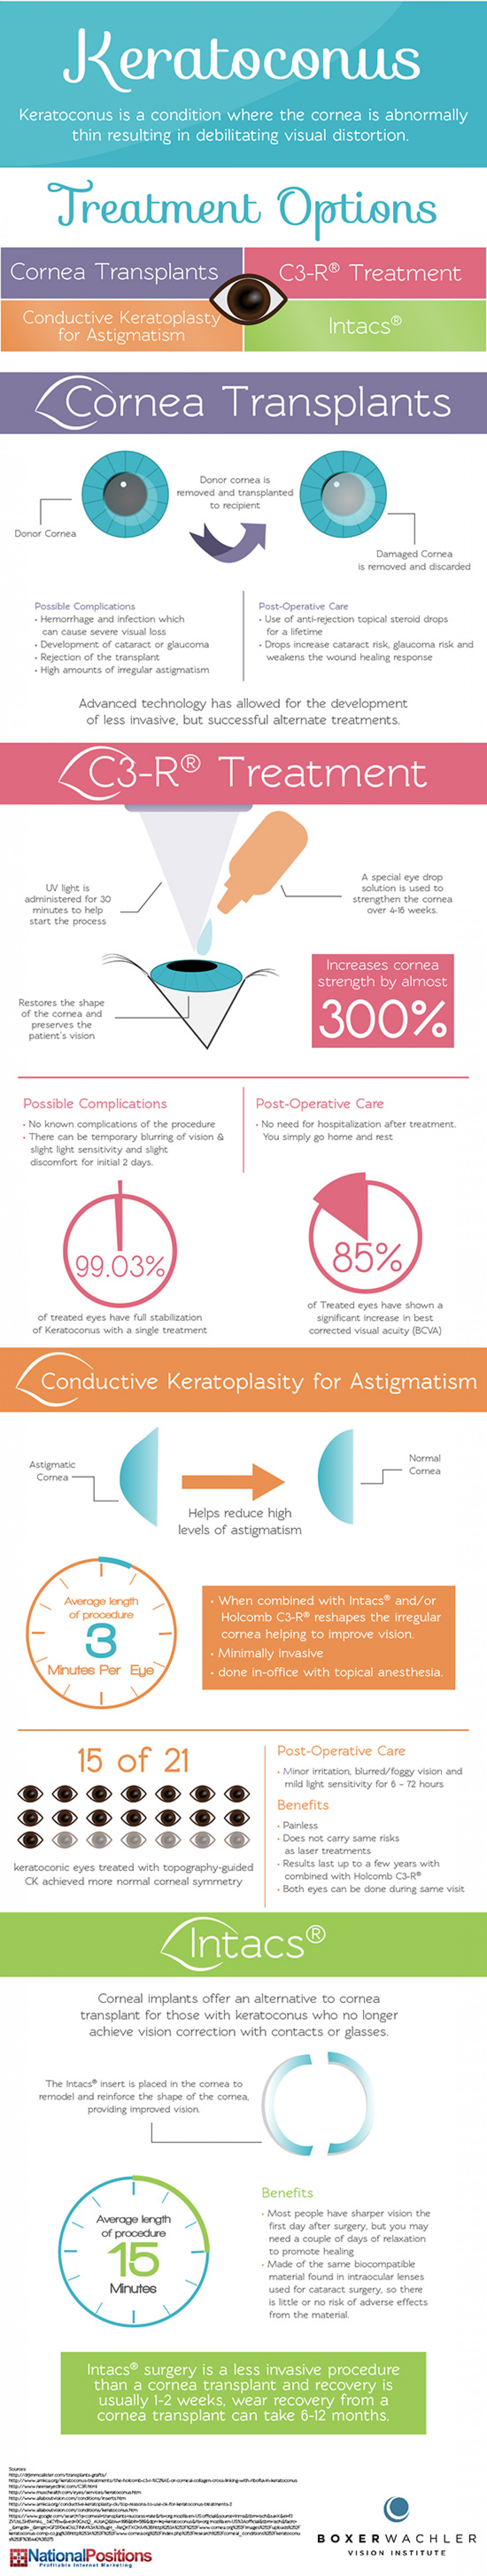 Keratoconus: Treatment Options Infographic